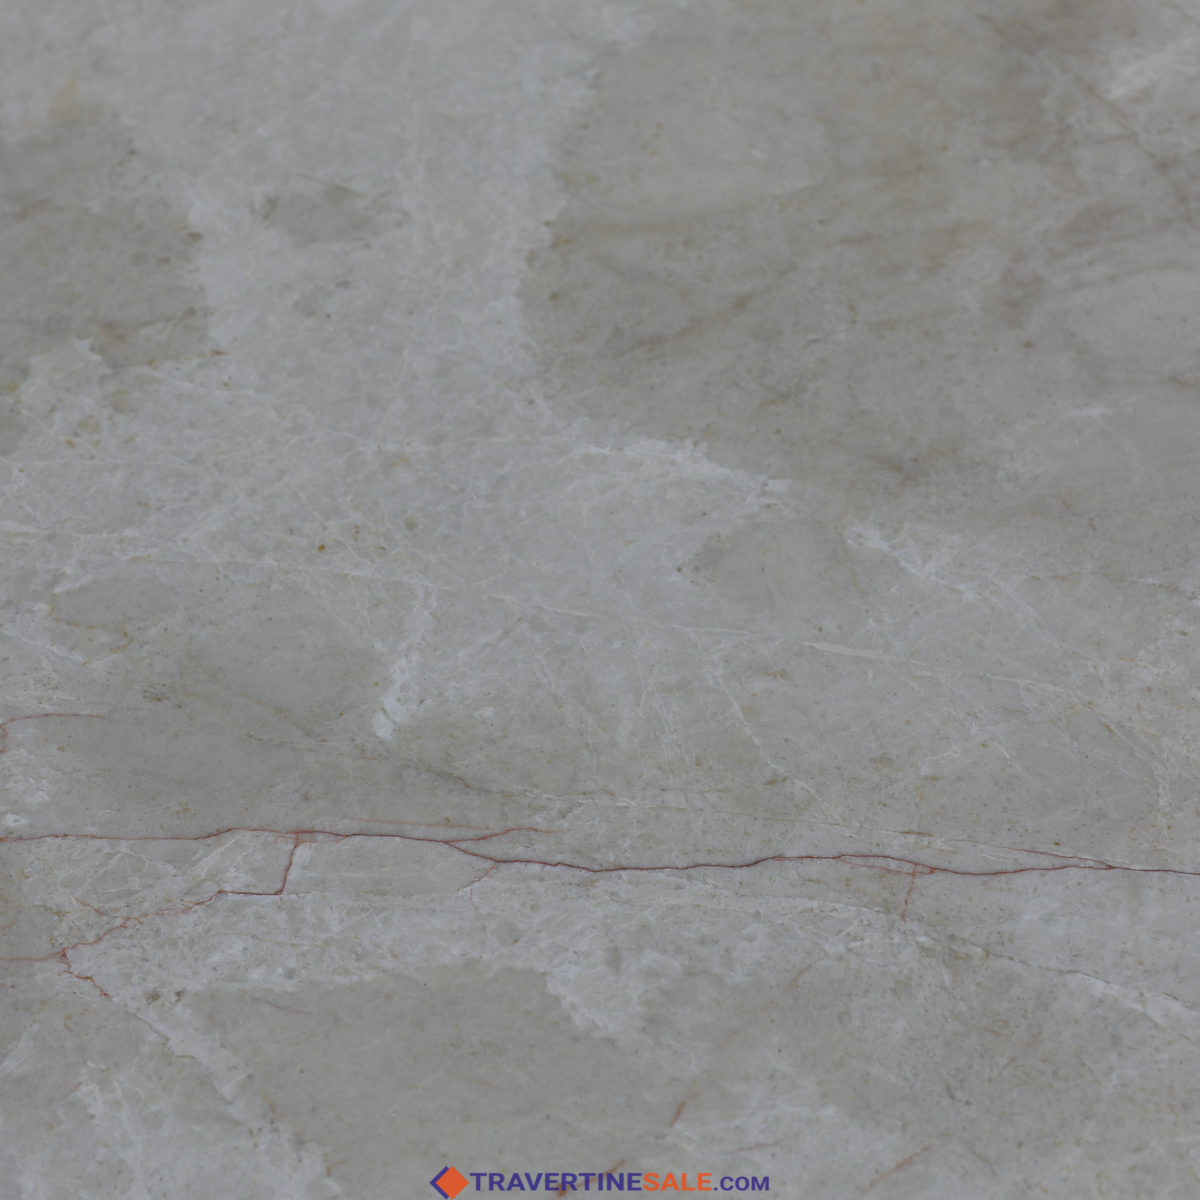 polished vanilla marble tile surface with beige color and red veins